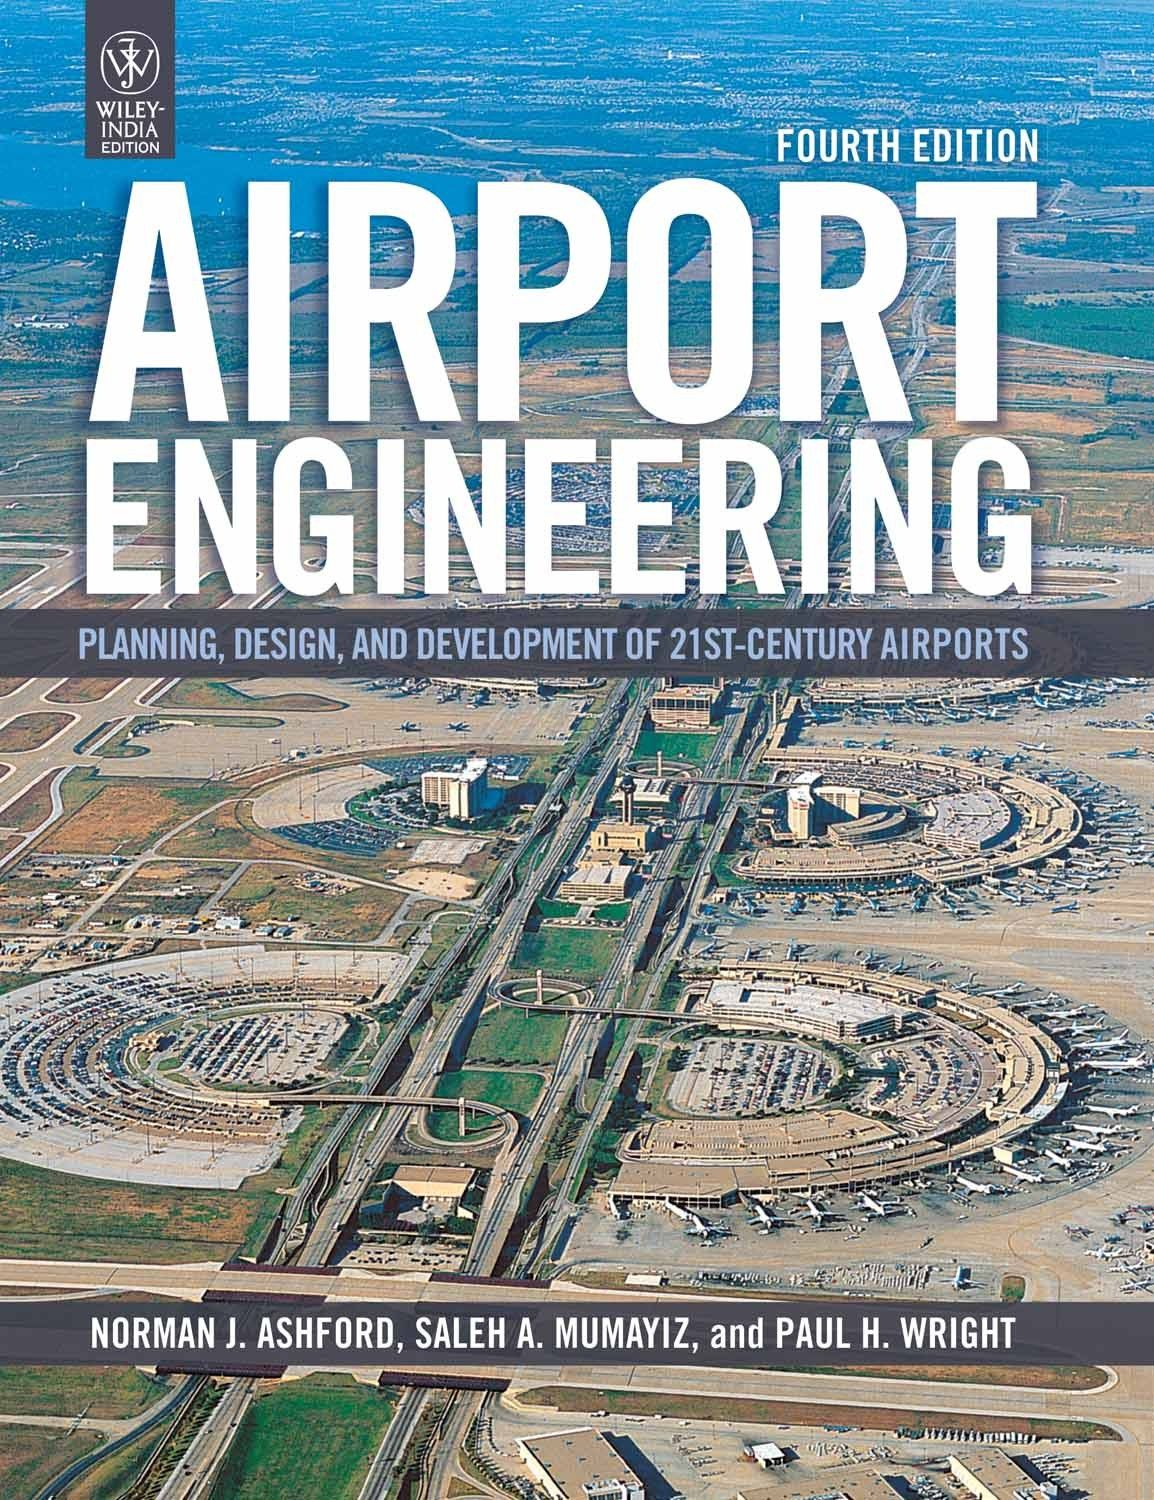 Airport Engineering Airport Runways Taxiways And Aprons Pinterest